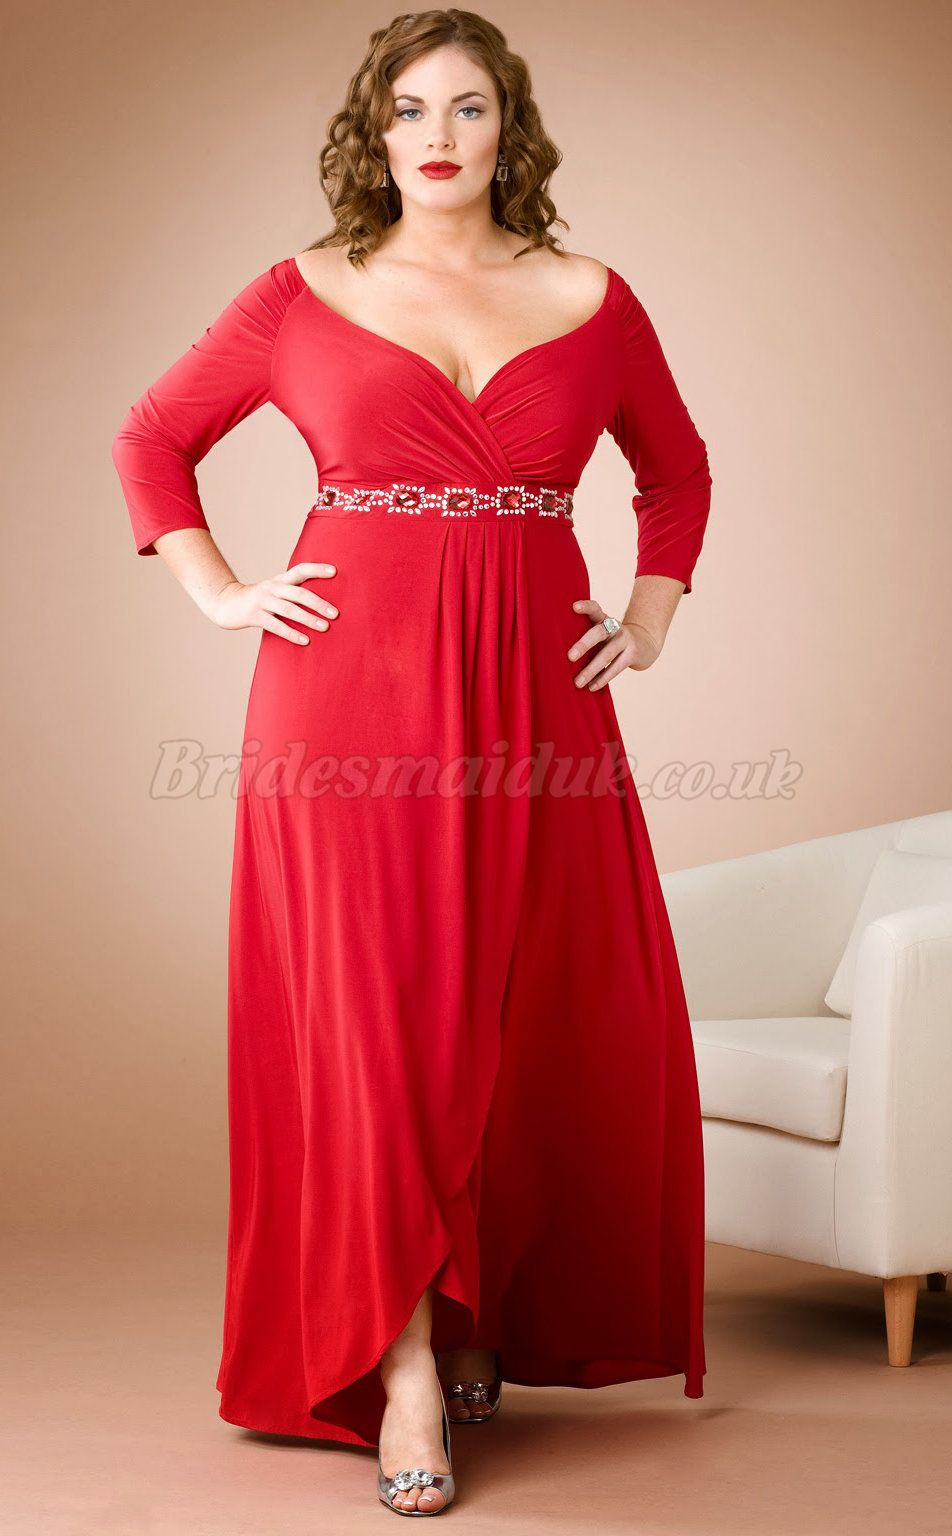 Chiffon red plus size bridesmaid dresses with sleeves at